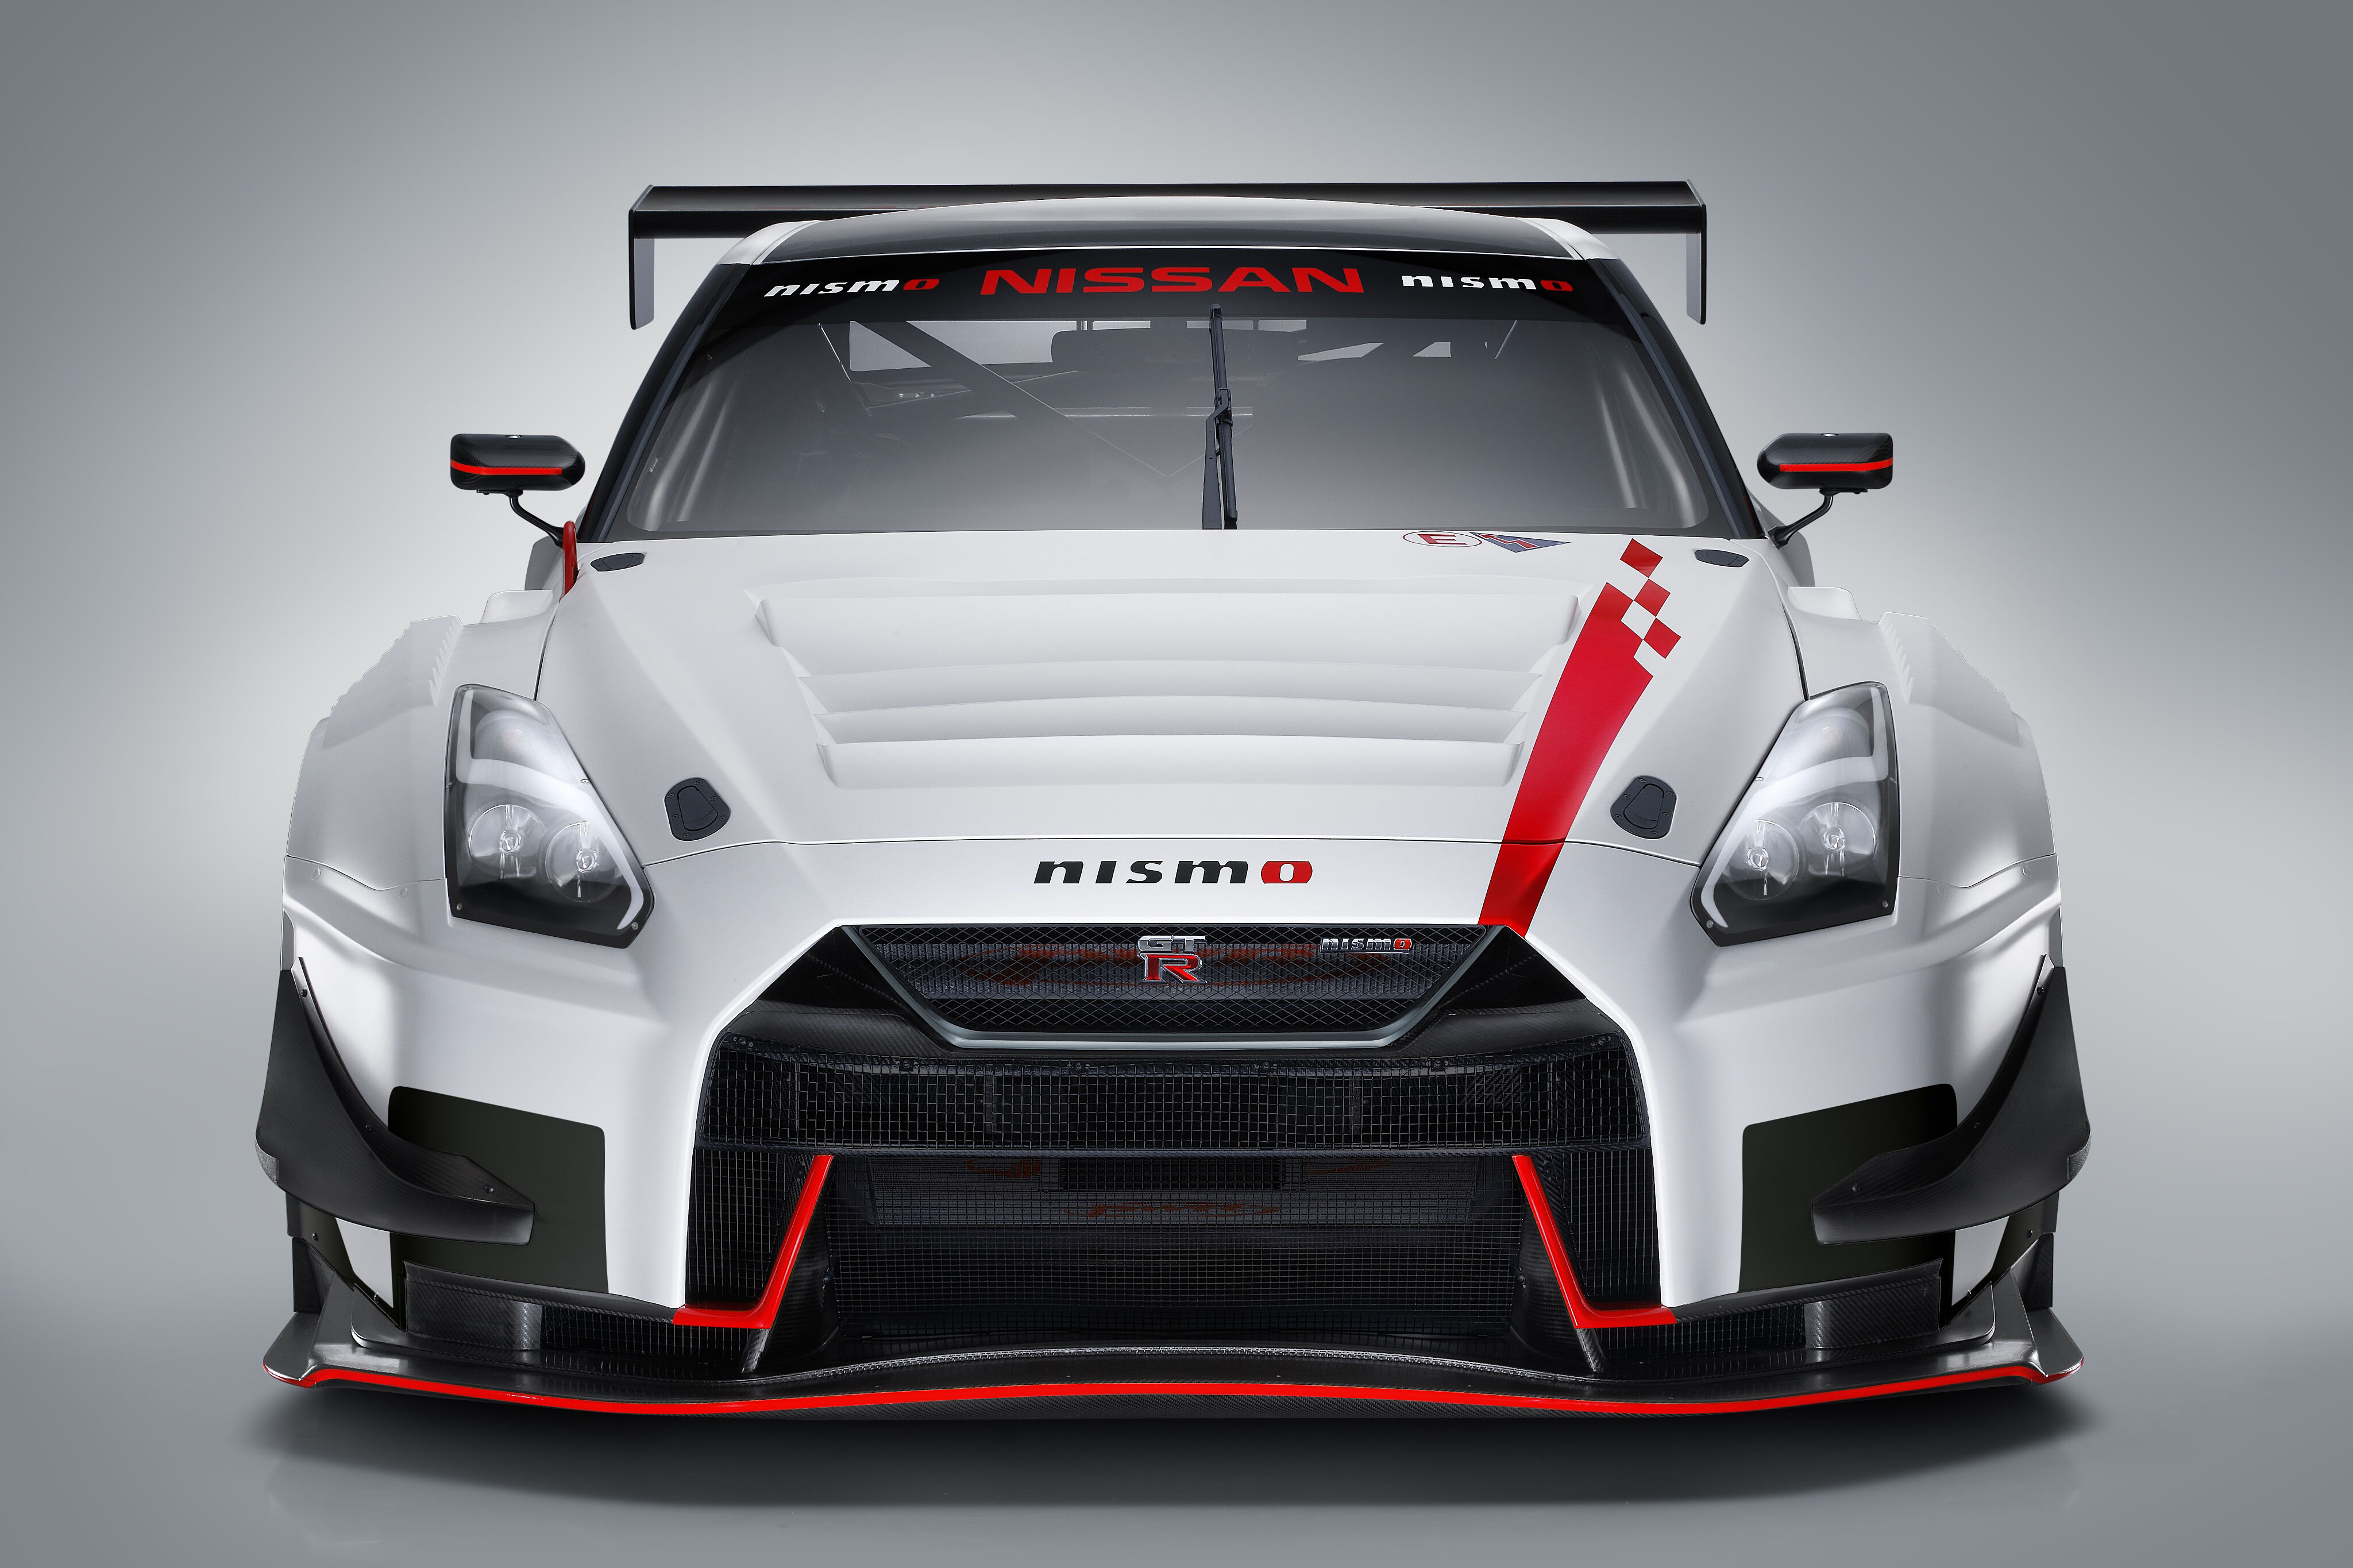 nismo nissan gt r gt3 2018 front 4k 1548528003 - Nismo Nissan GT R GT3 2018 Front 4k - nissan wallpapers, nissan gtr wallpapers, hd-wallpapers, cars wallpapers, 4k-wallpapers, 2018 cars wallpapers